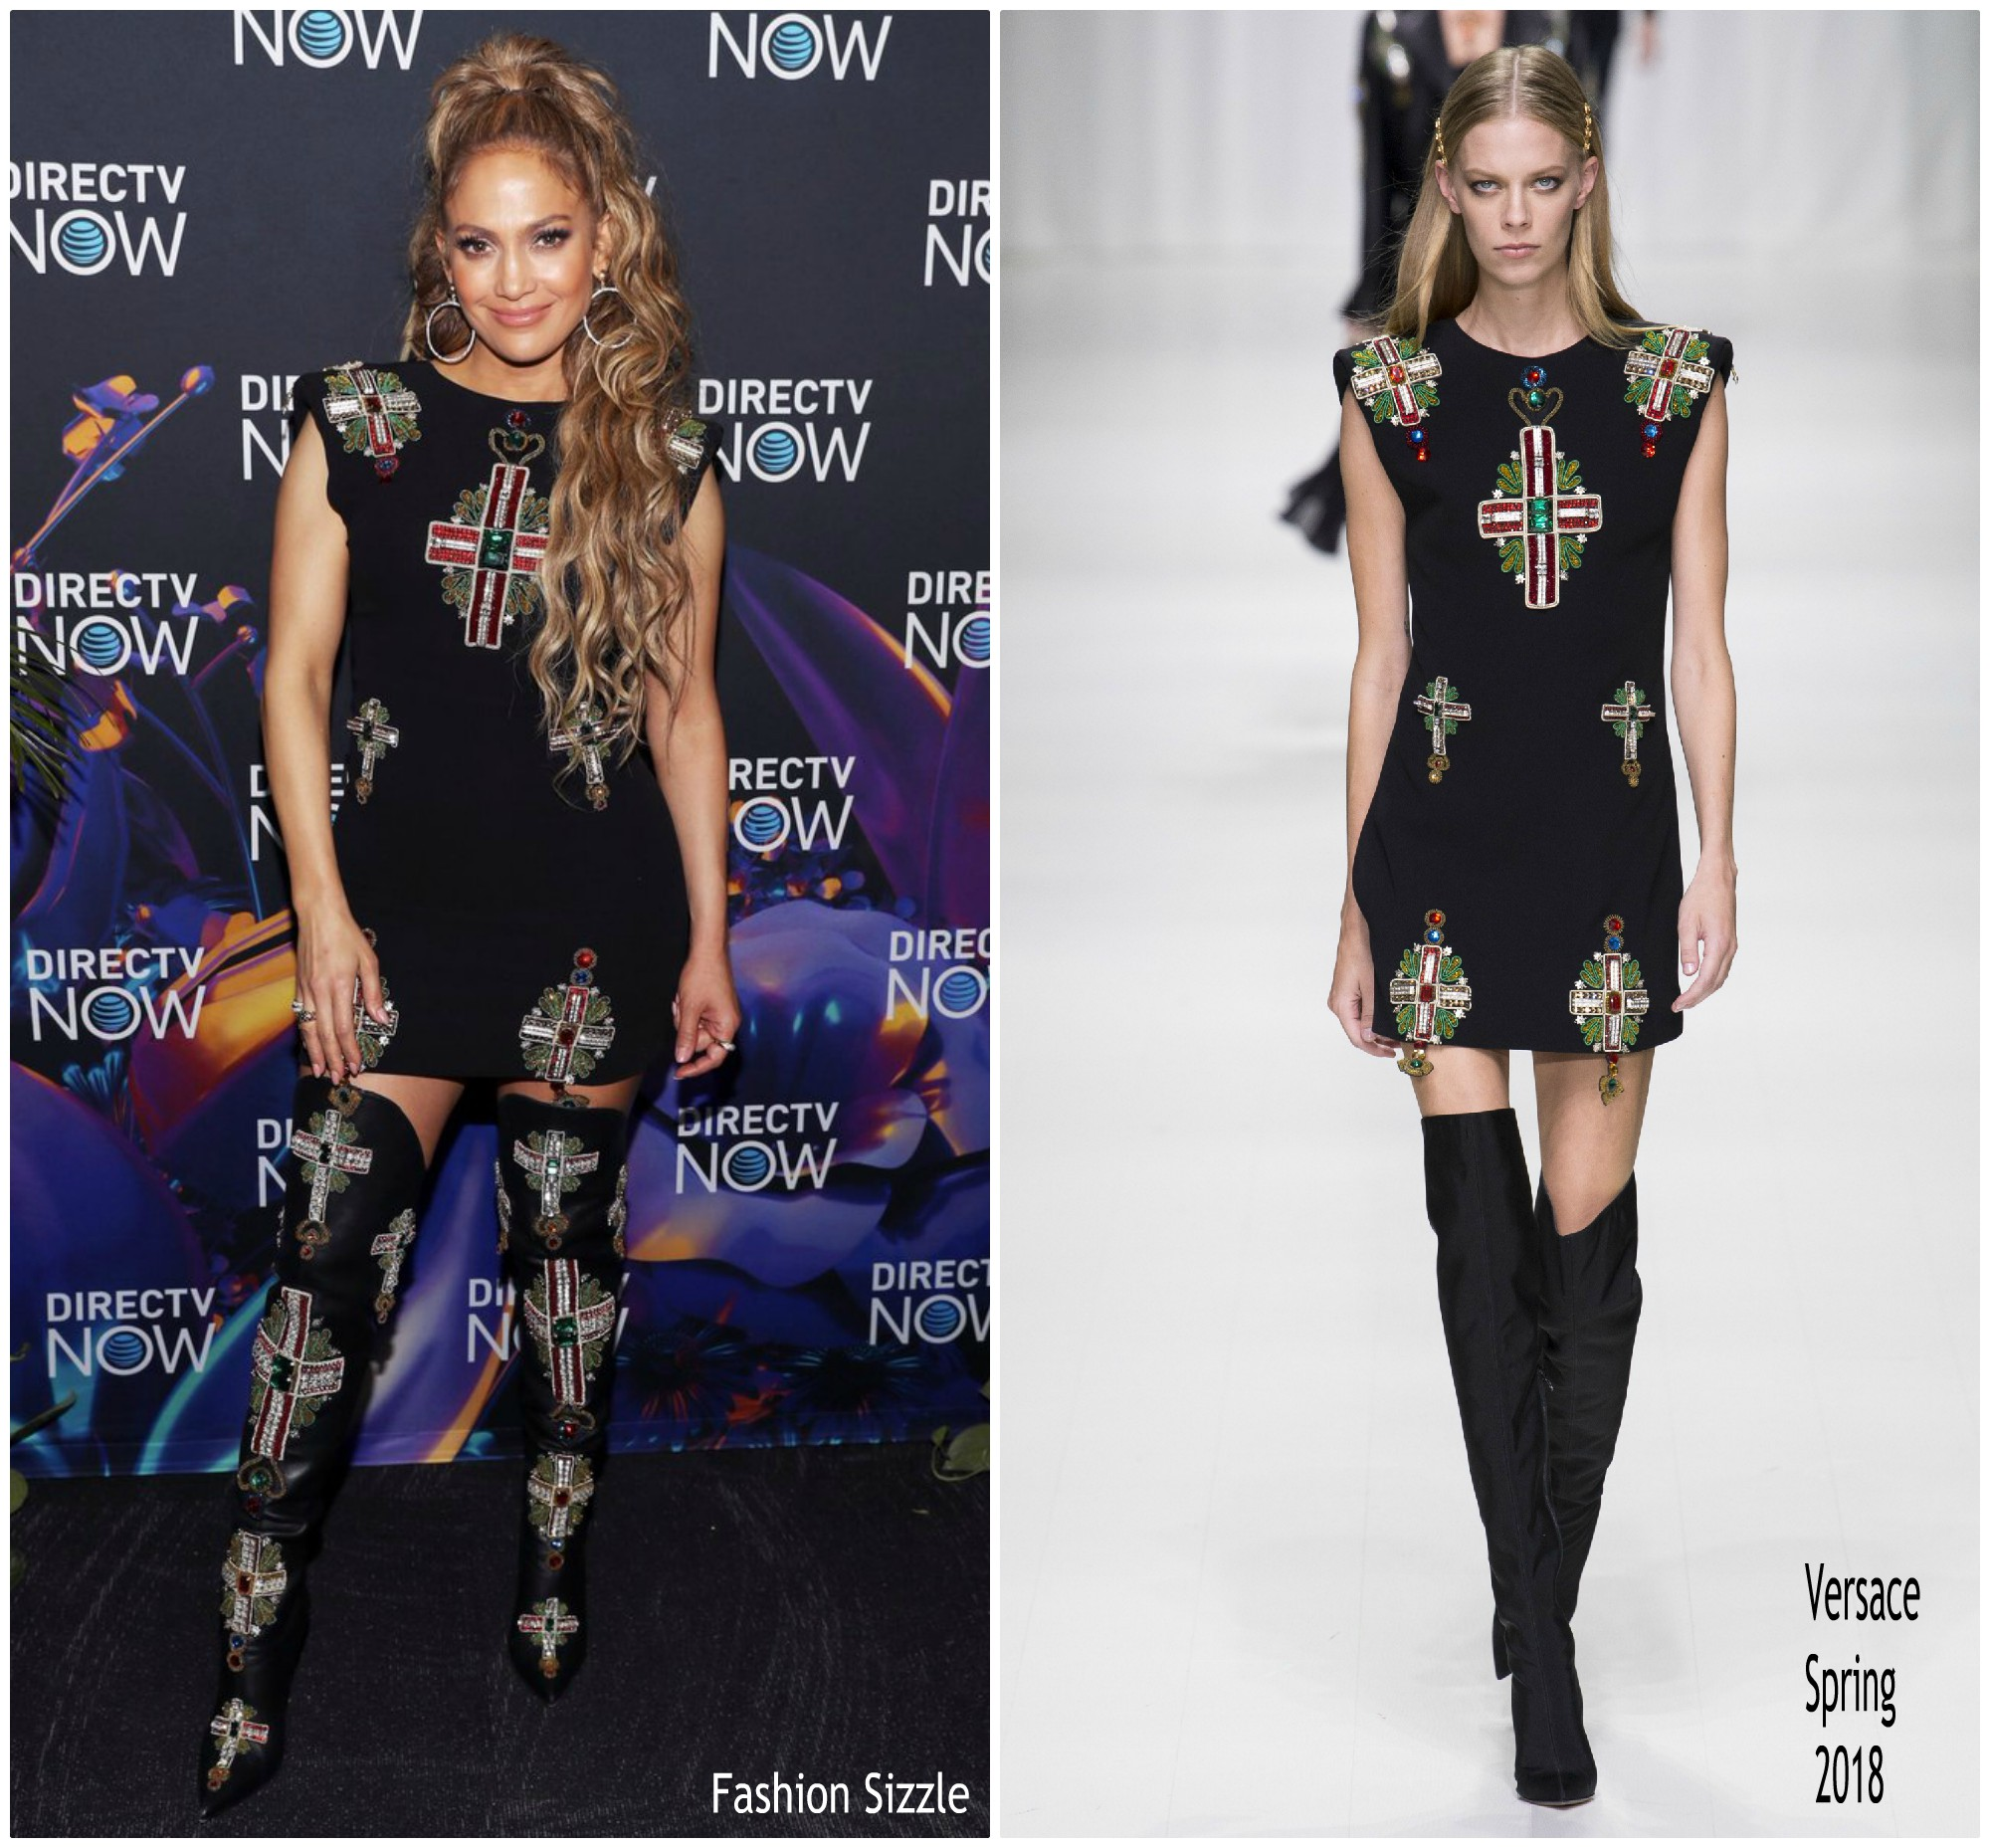 jennifer-lopez-in-versace-directv-super-bowl-party-in-minneapolis